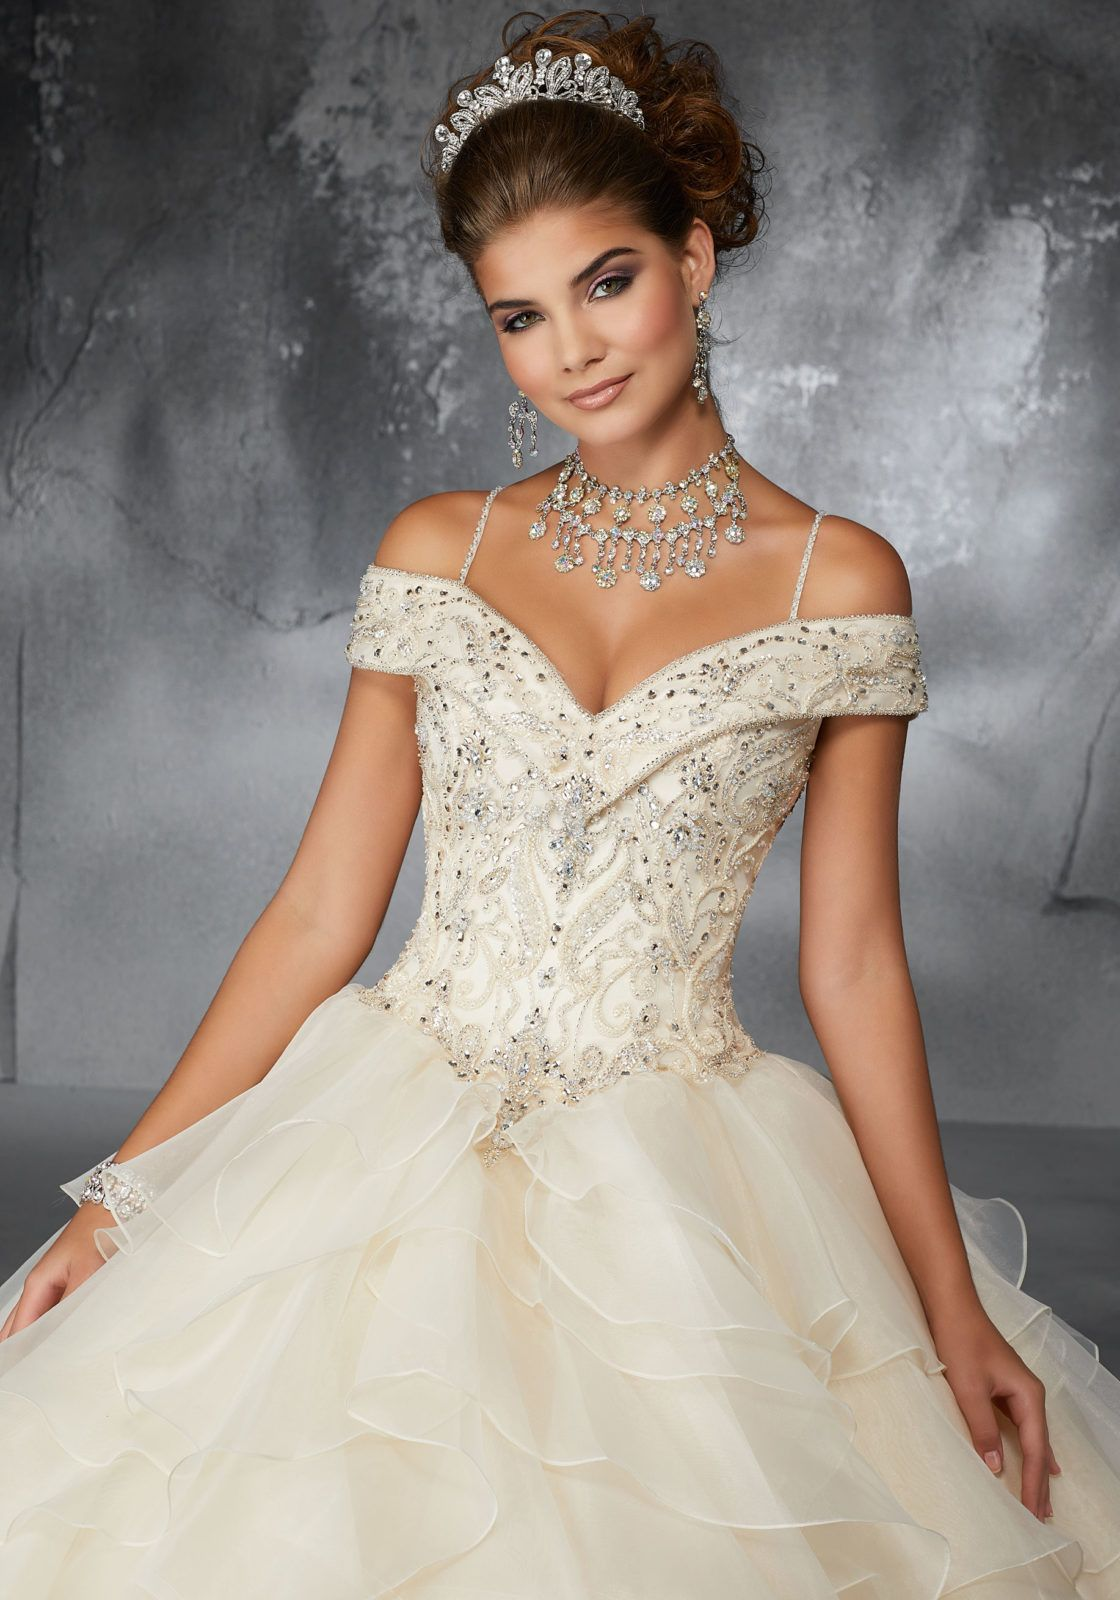 a2fe1a98016 Beaded Embroidery on a Flounced Organza Ballgown with Cold-Shoulder  Princess Neckline